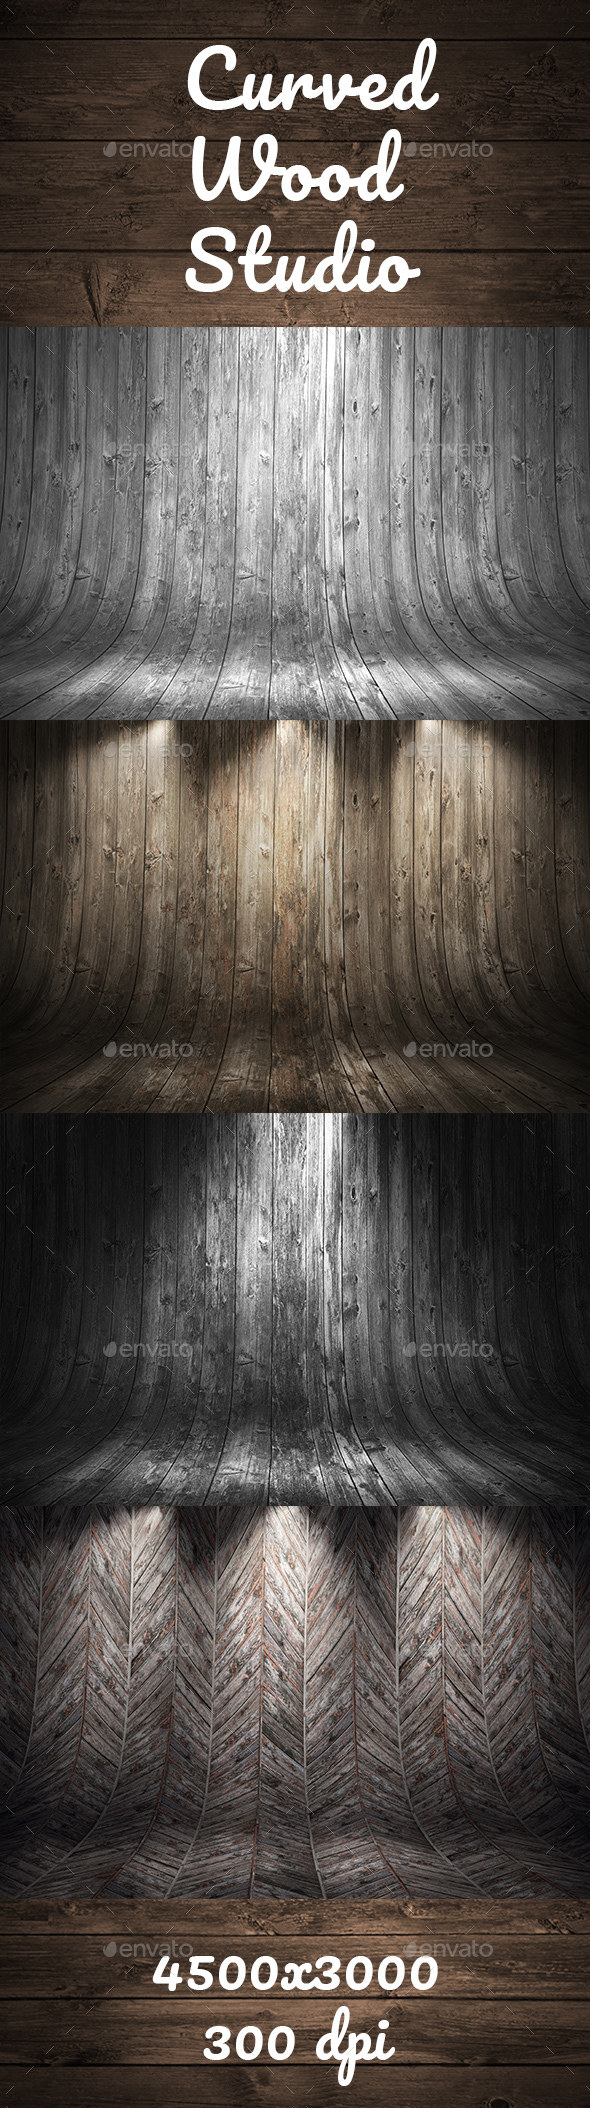 Old Grungy Curved Wooden Studio Background - 3D Backgrounds